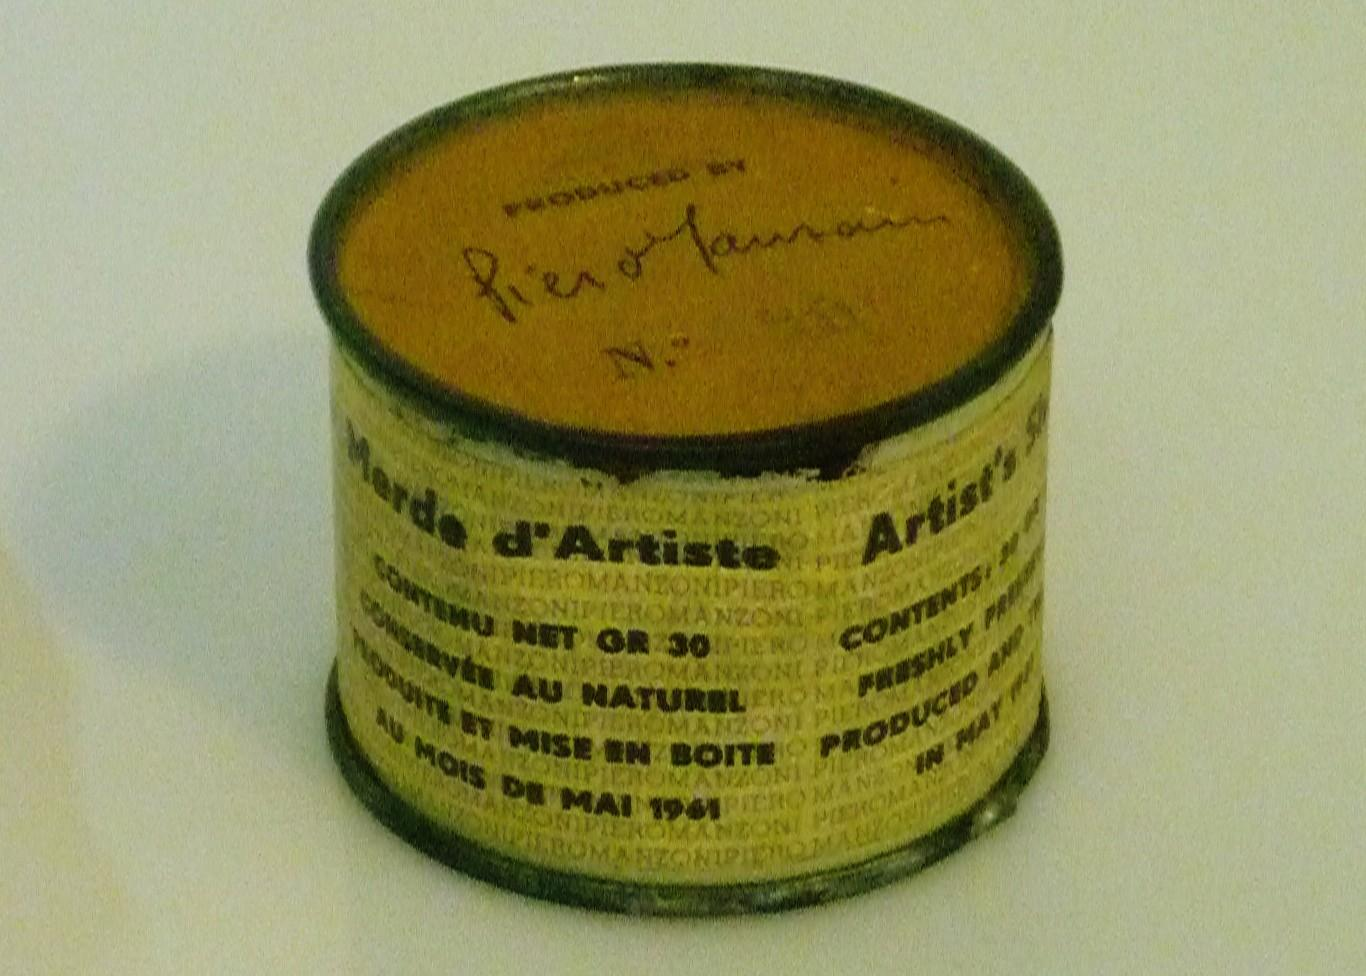 A can of excrement by Piero Manzoni. (Image: Mark B. Schlemmer via Flickr CC BY 2.0 )